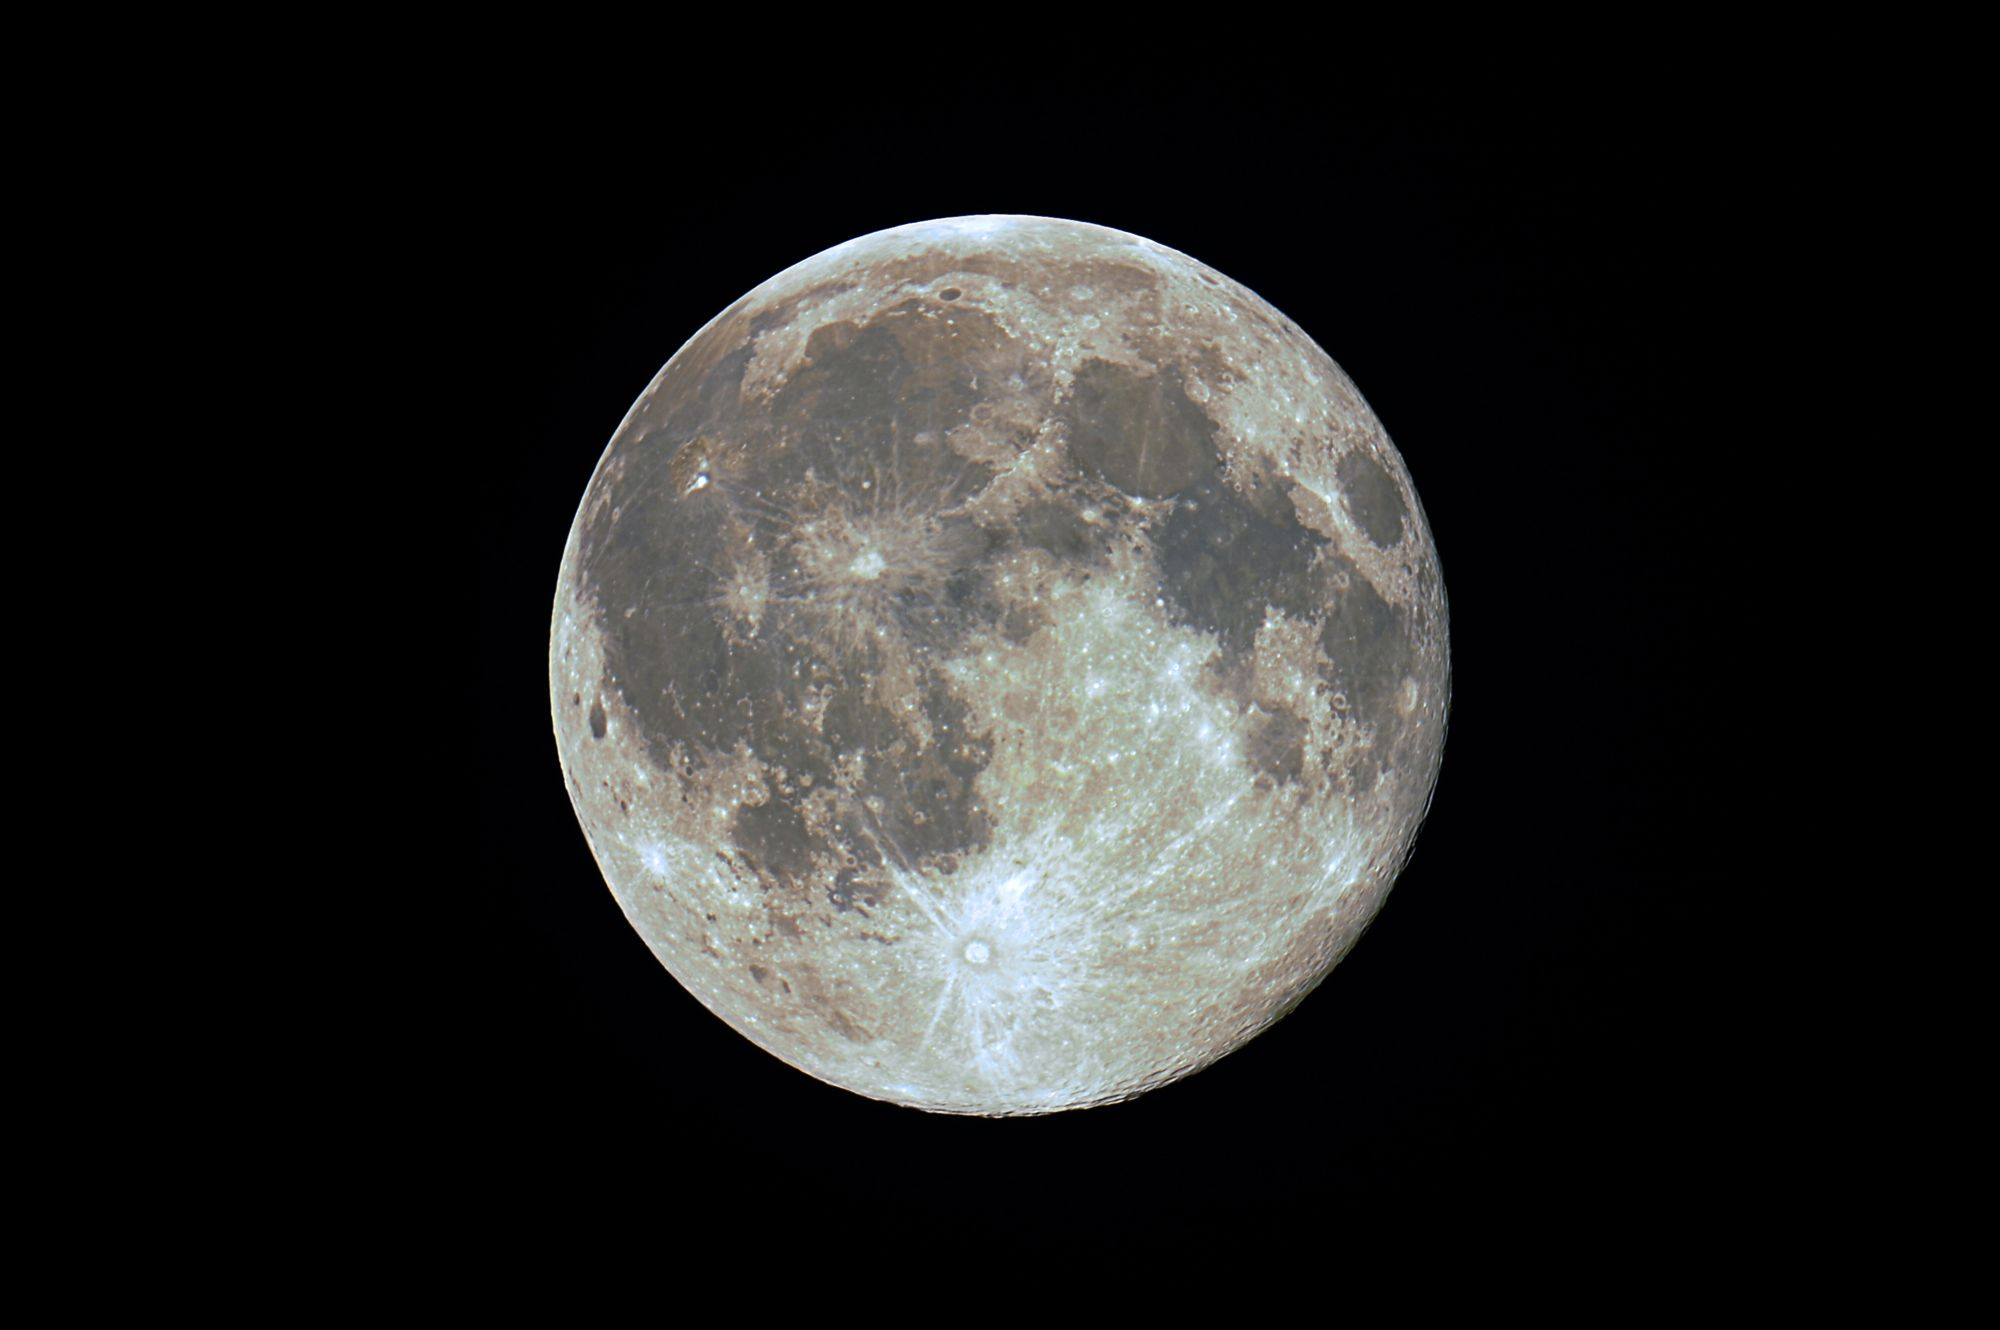 Full Moon (Sept. 2009)